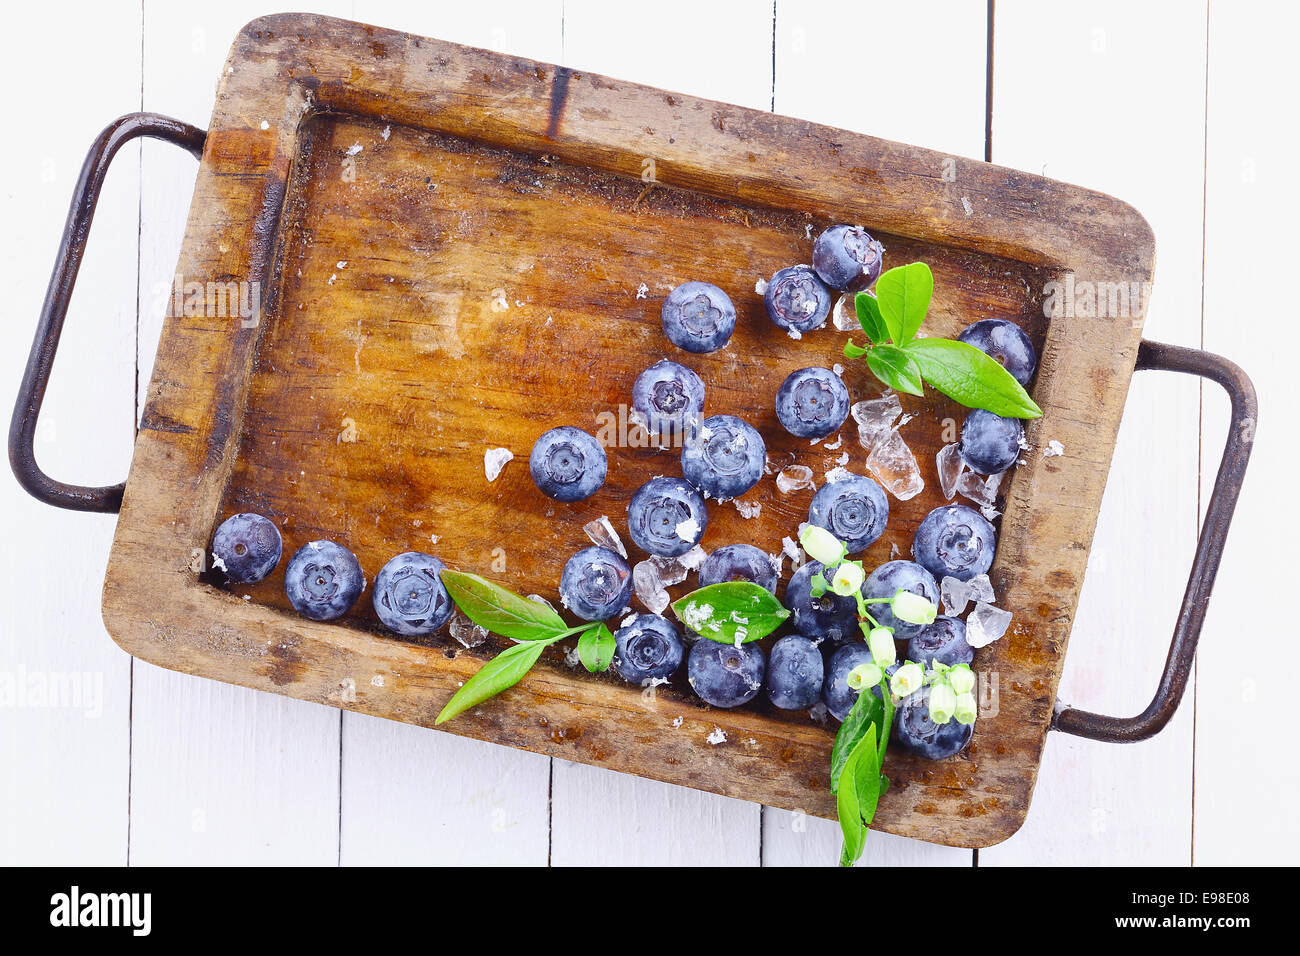 Ripe blueberries or bilberries in an old grungy wood tray with a small flowery branch over a white wooden table - Stock Image